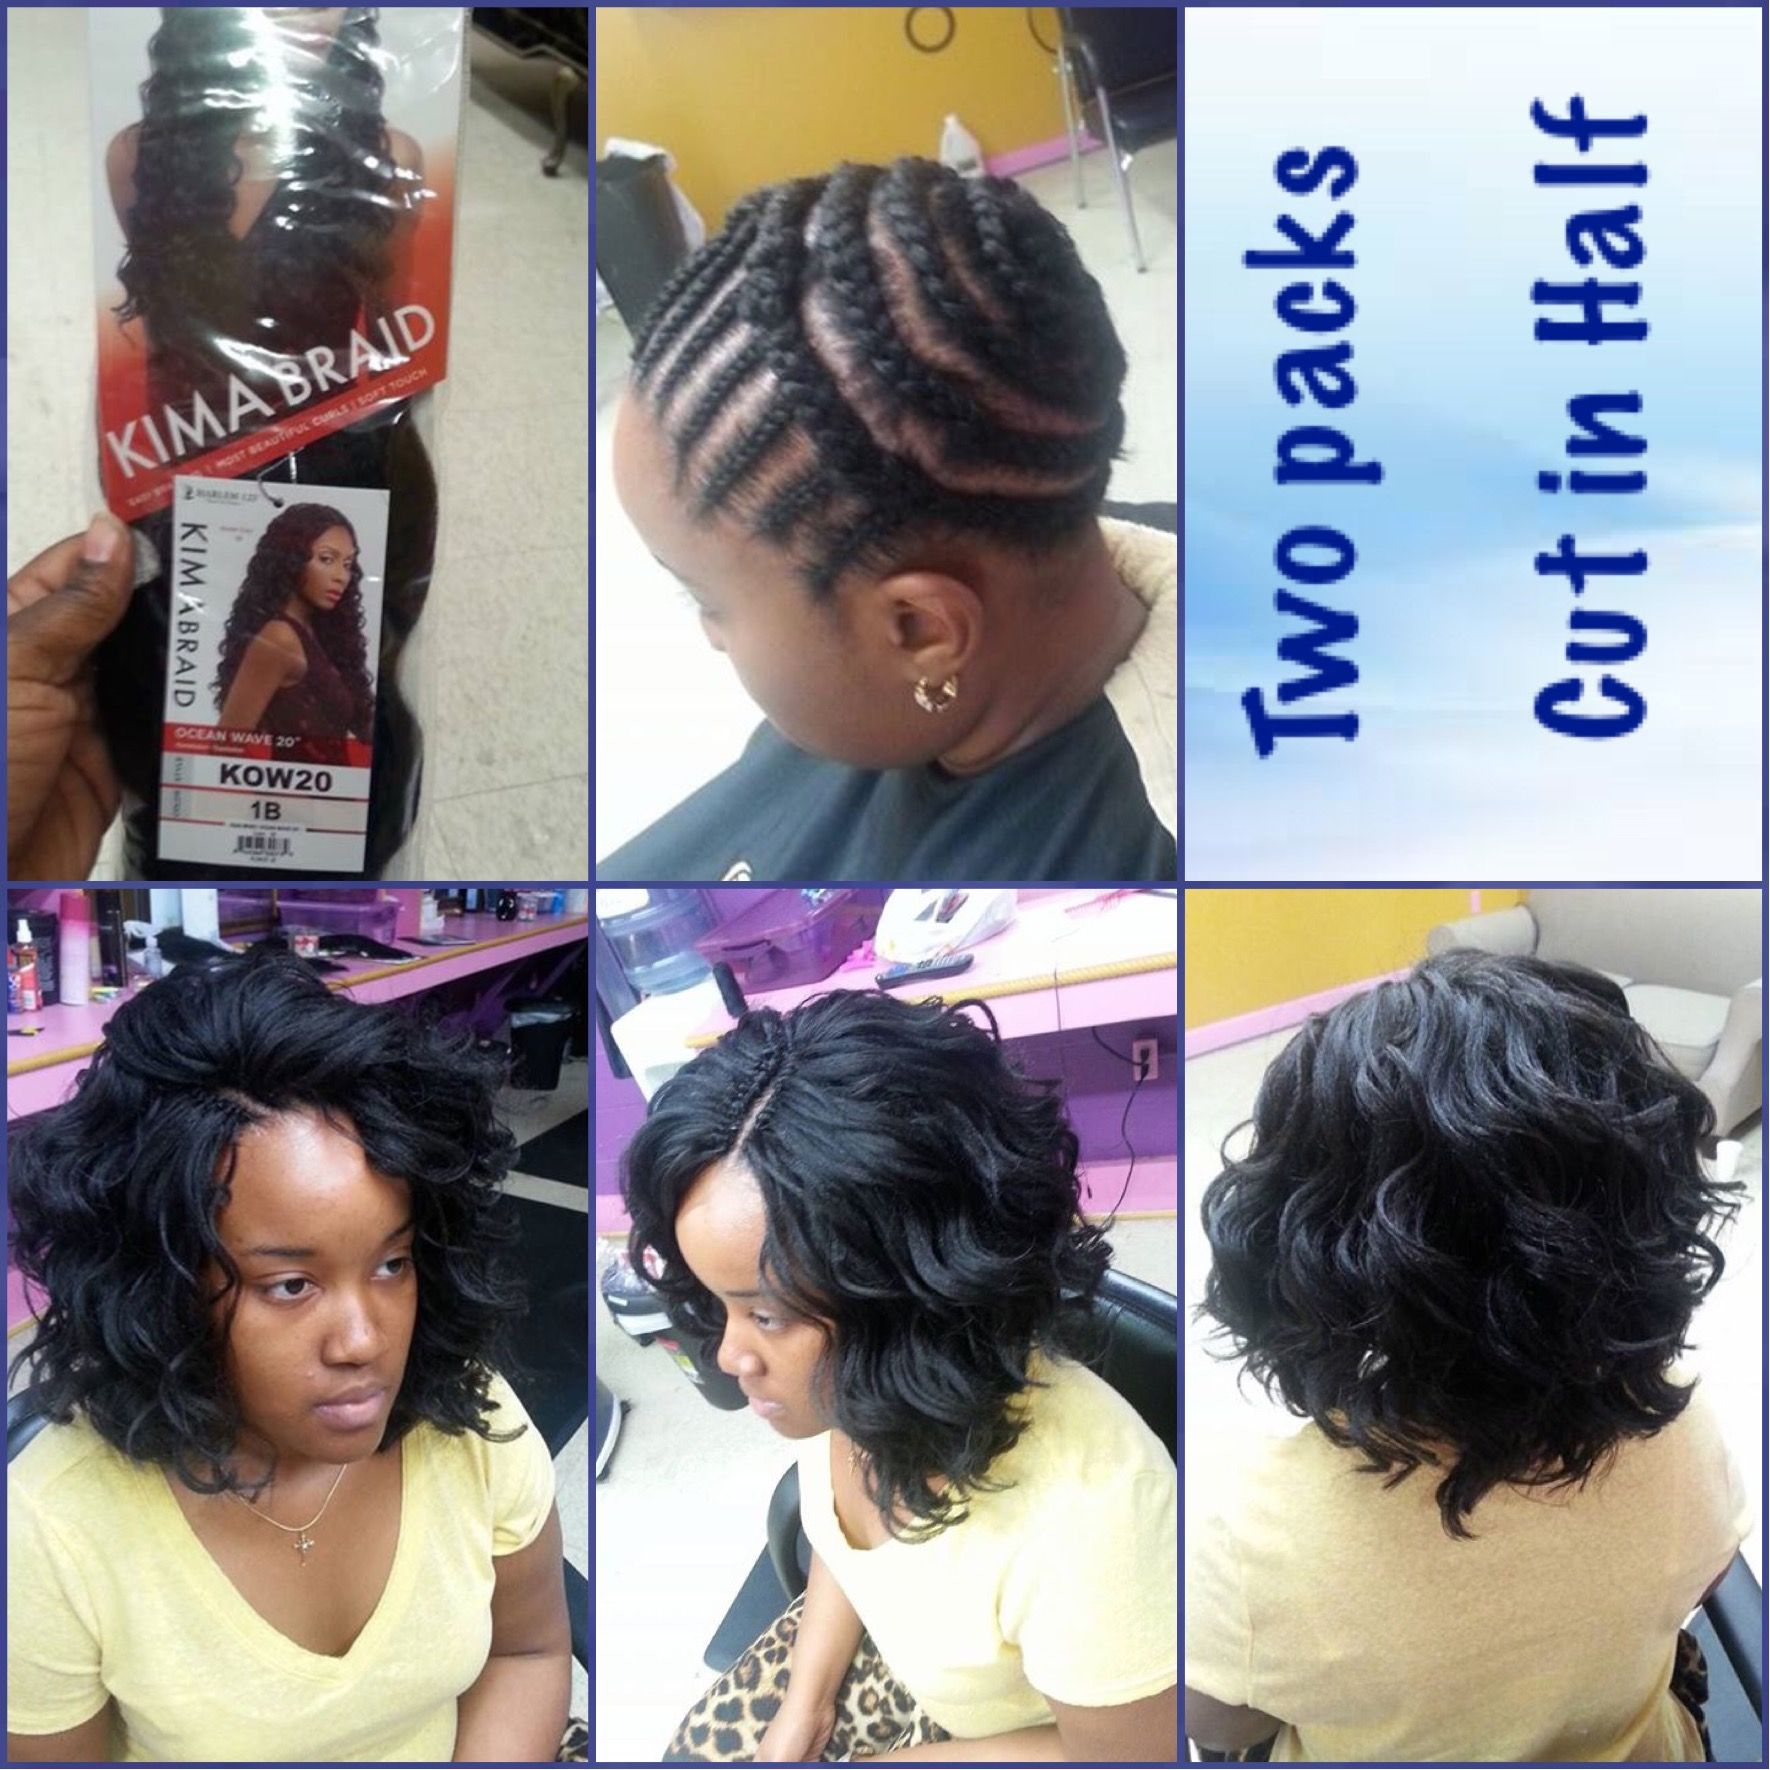 Kima braid hair crochets | Projects to Try | Pinterest | Extensiones ...